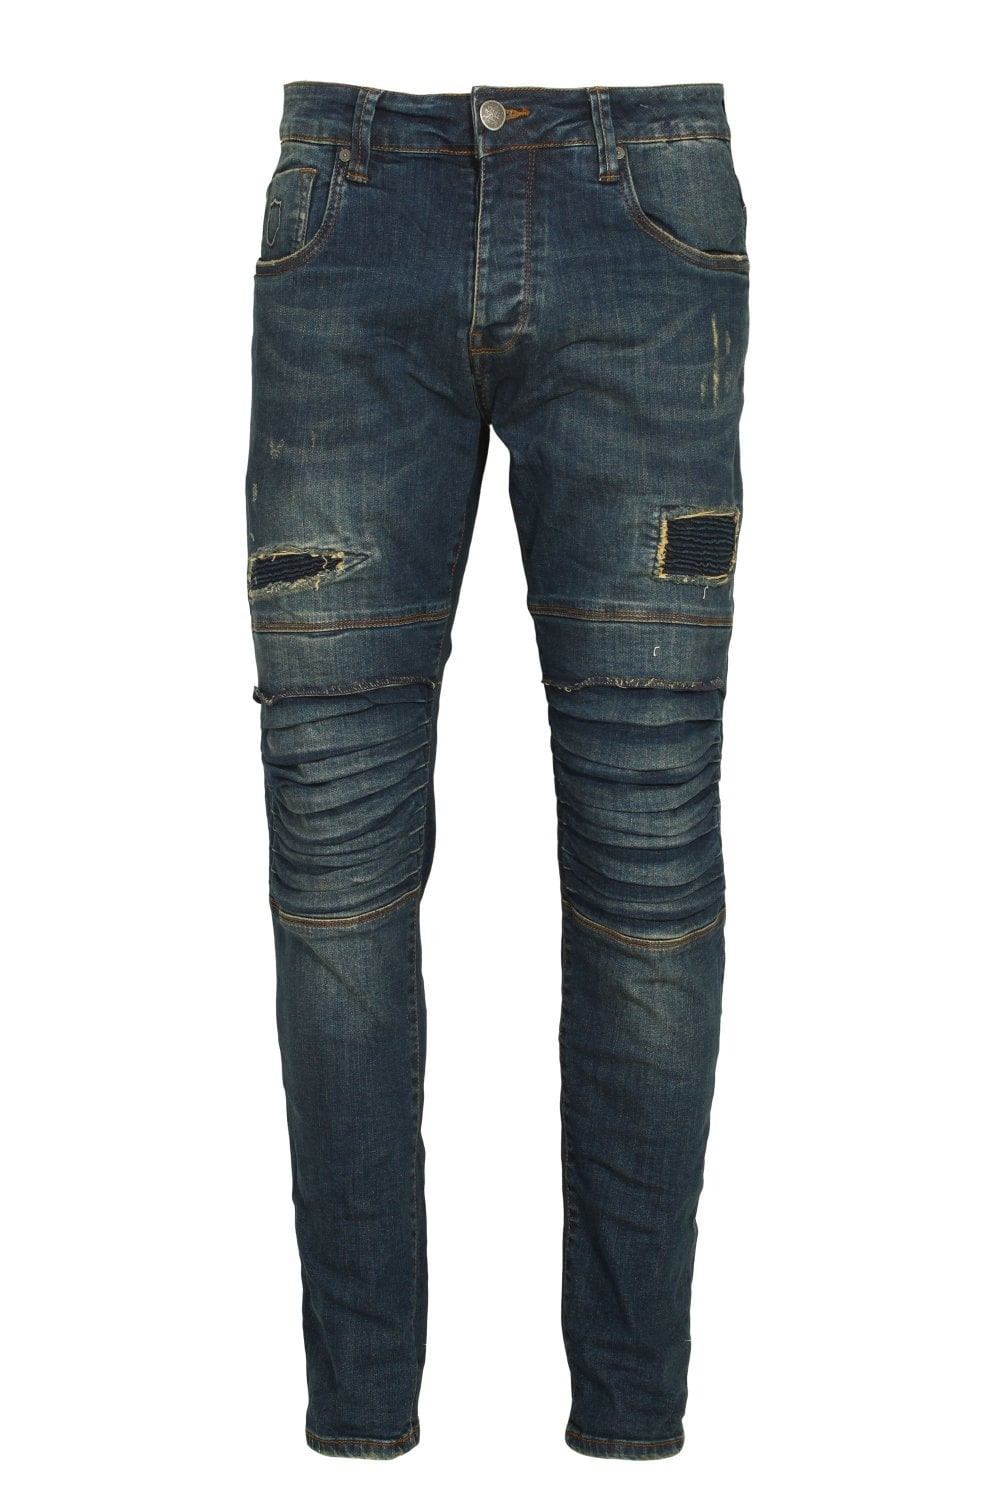 48c2d60b 883 Police Moriarty 18B Tapered Slim Fit Jeans | Shop 883 Police Denim